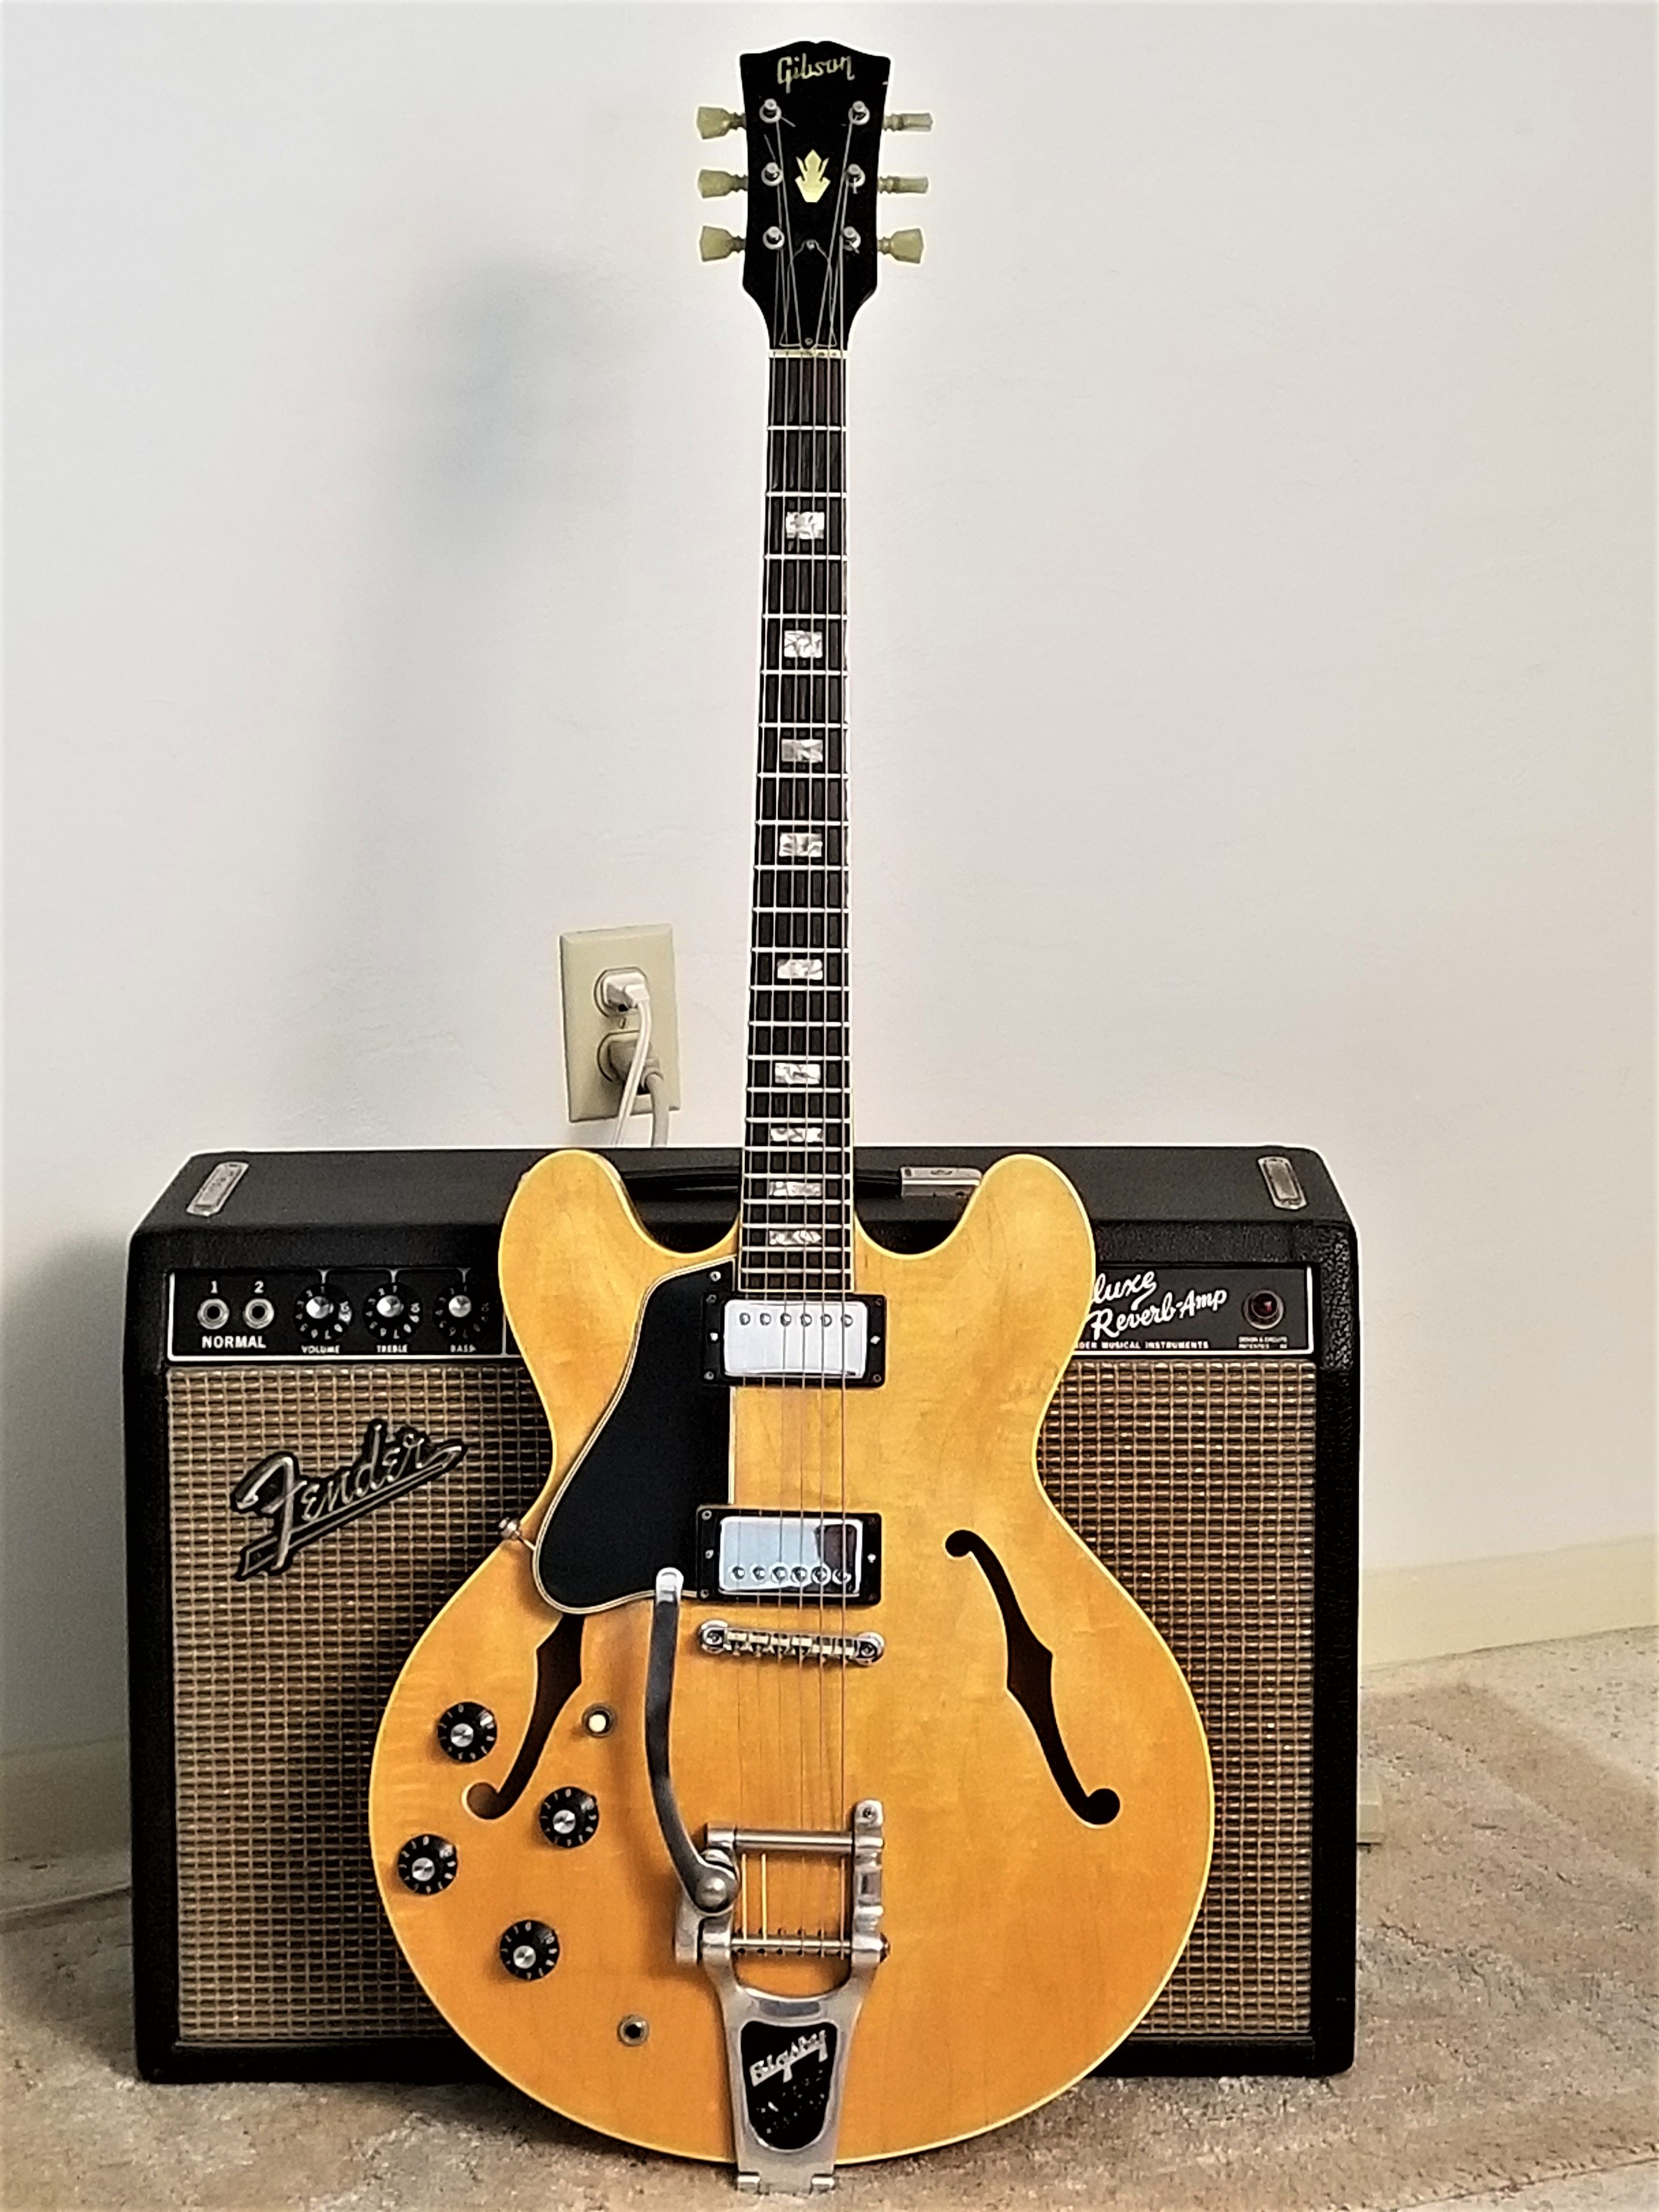 1968 gibson blonde es-335, 100% original with ohsc, 1 of only 2!